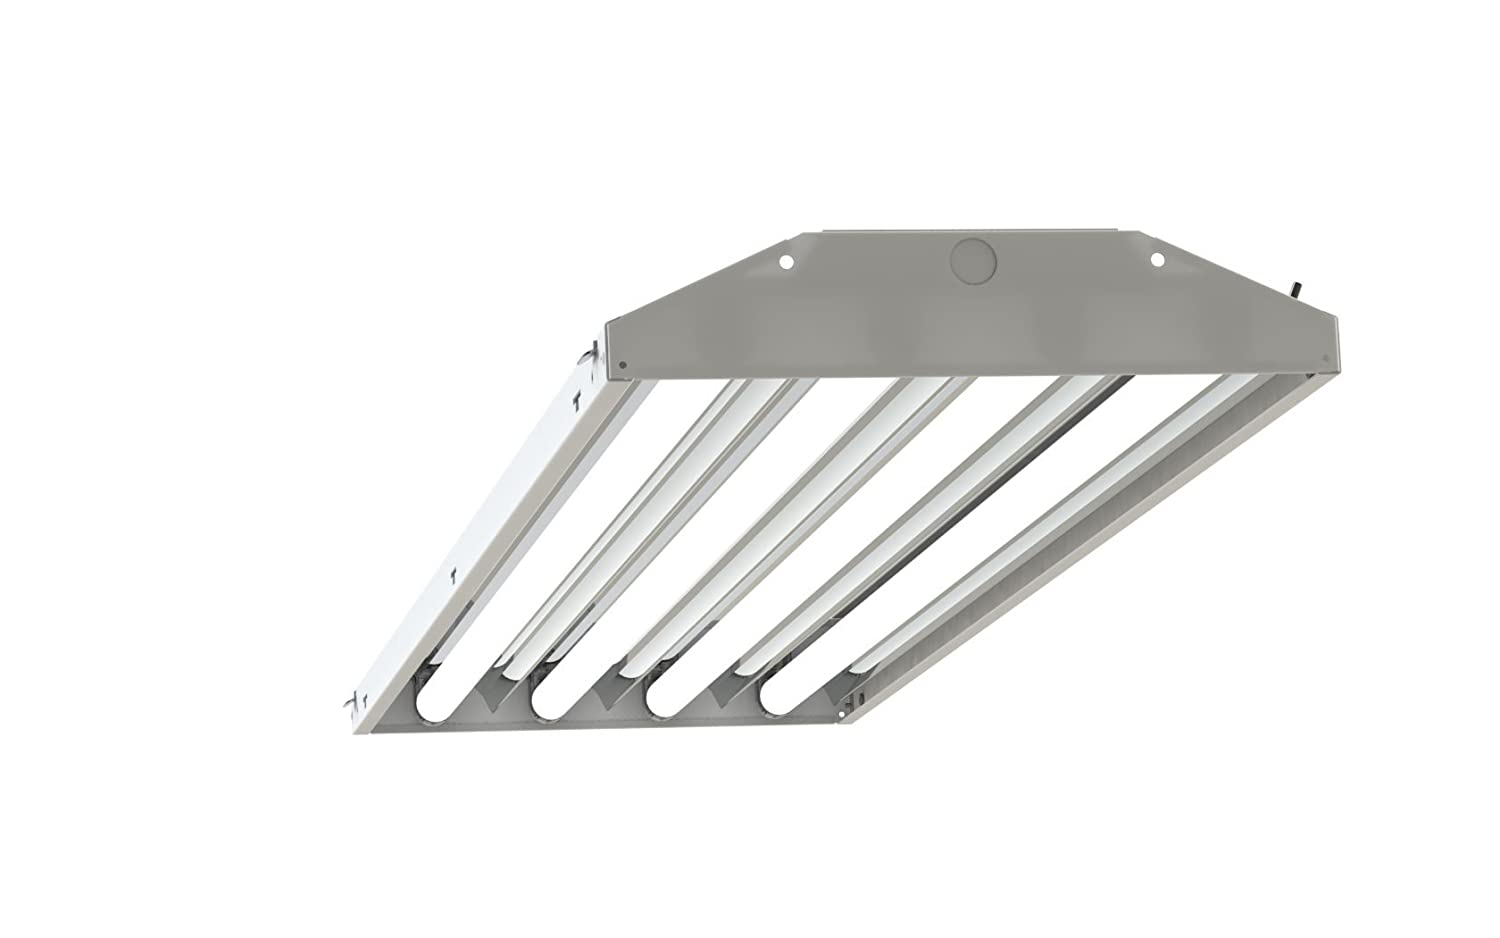 4 lamp t5 ho high bay fluorescent lighting fixture high output t5ho 4 lamp t5 ho high bay fluorescent lighting fixture high output t5ho 120 277v w lamps and wire guard amazon arubaitofo Gallery